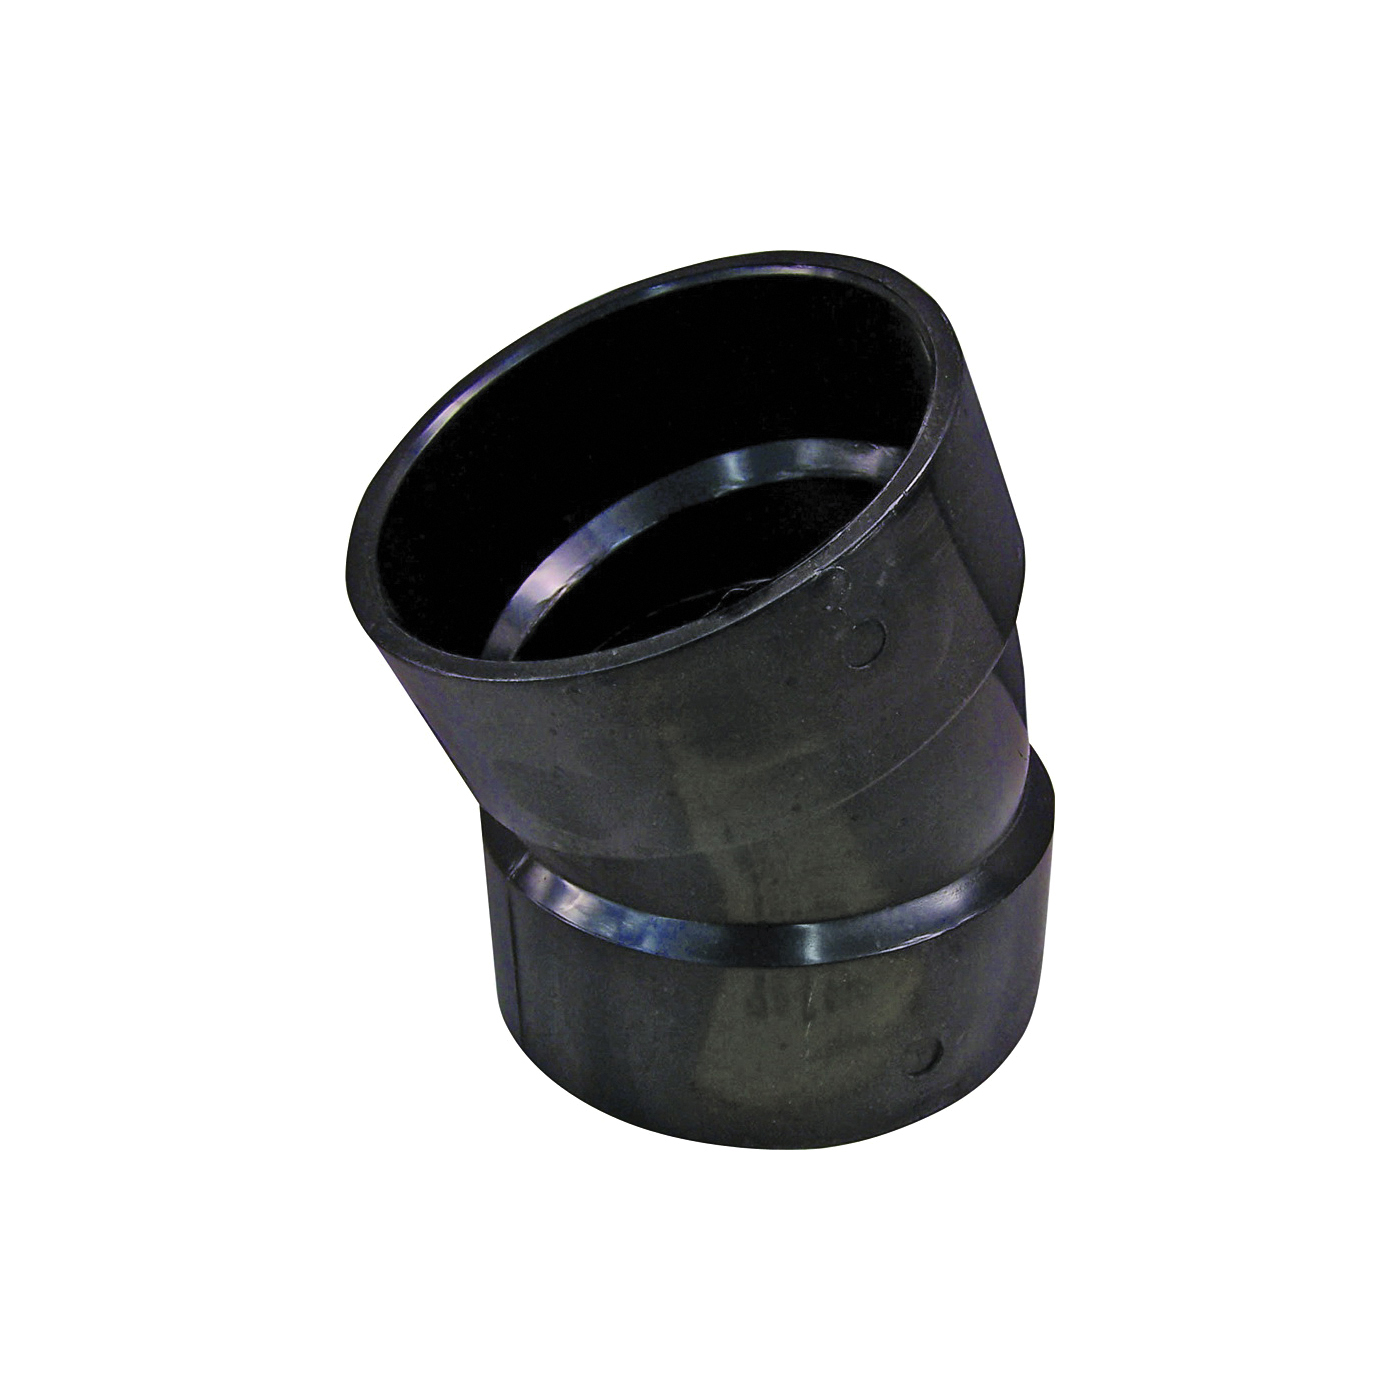 Picture of GENOVA 80830 Pipe Elbow, 3 in, Hub, 22.5 deg Angle, ABS, SCH 40 Schedule